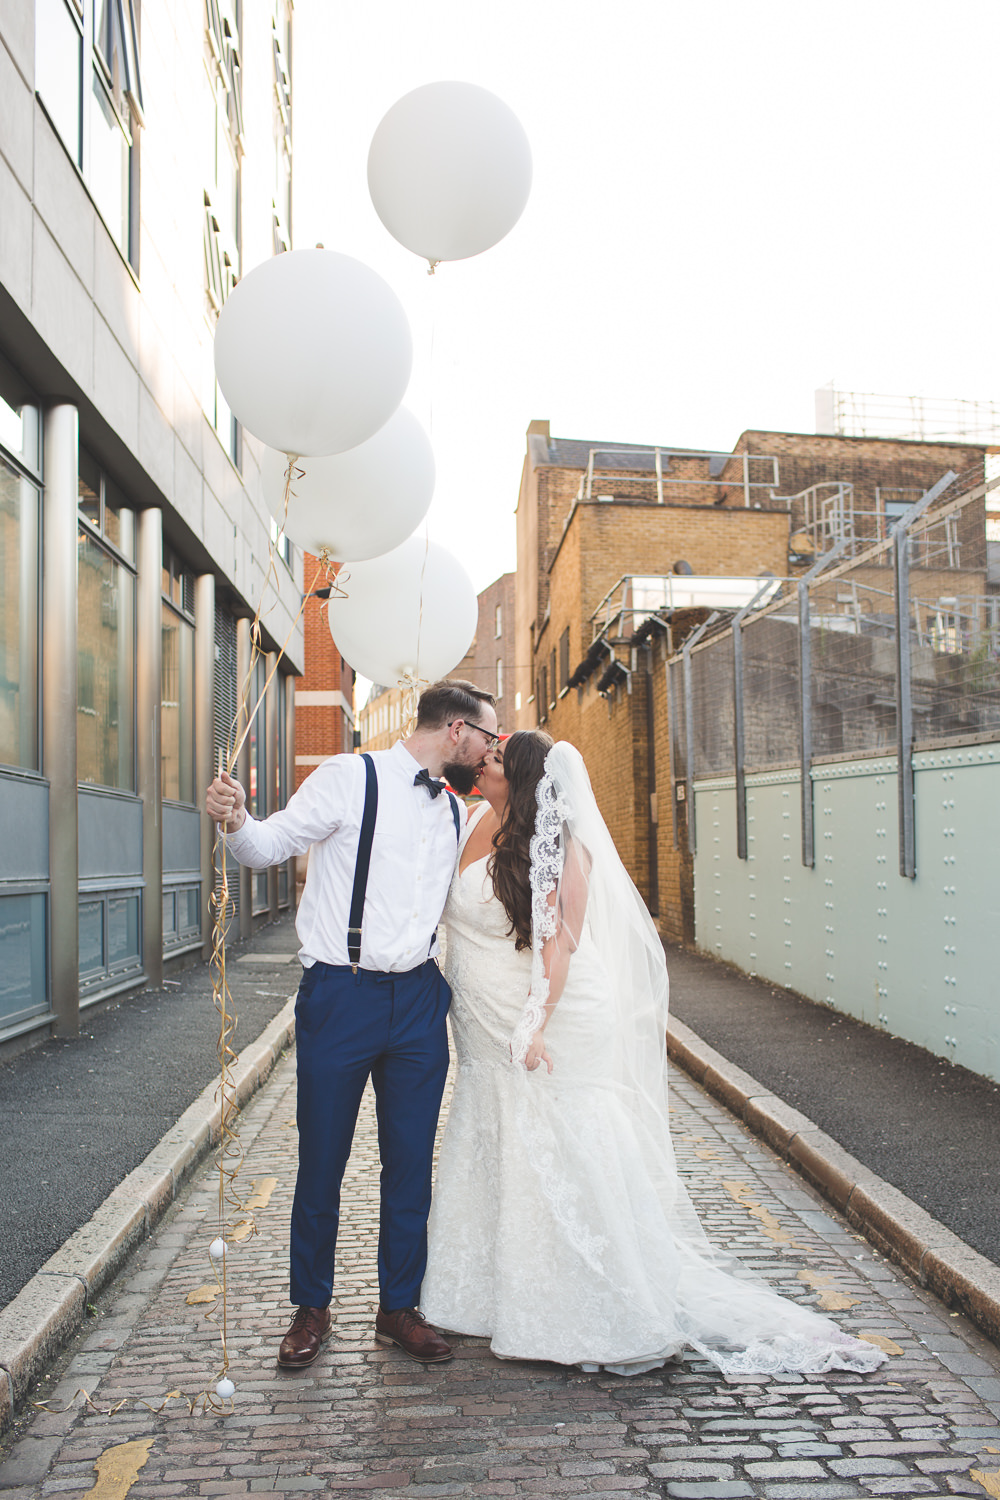 Callie Thorpe Stylish Wedding At 06 St Chad S Place London